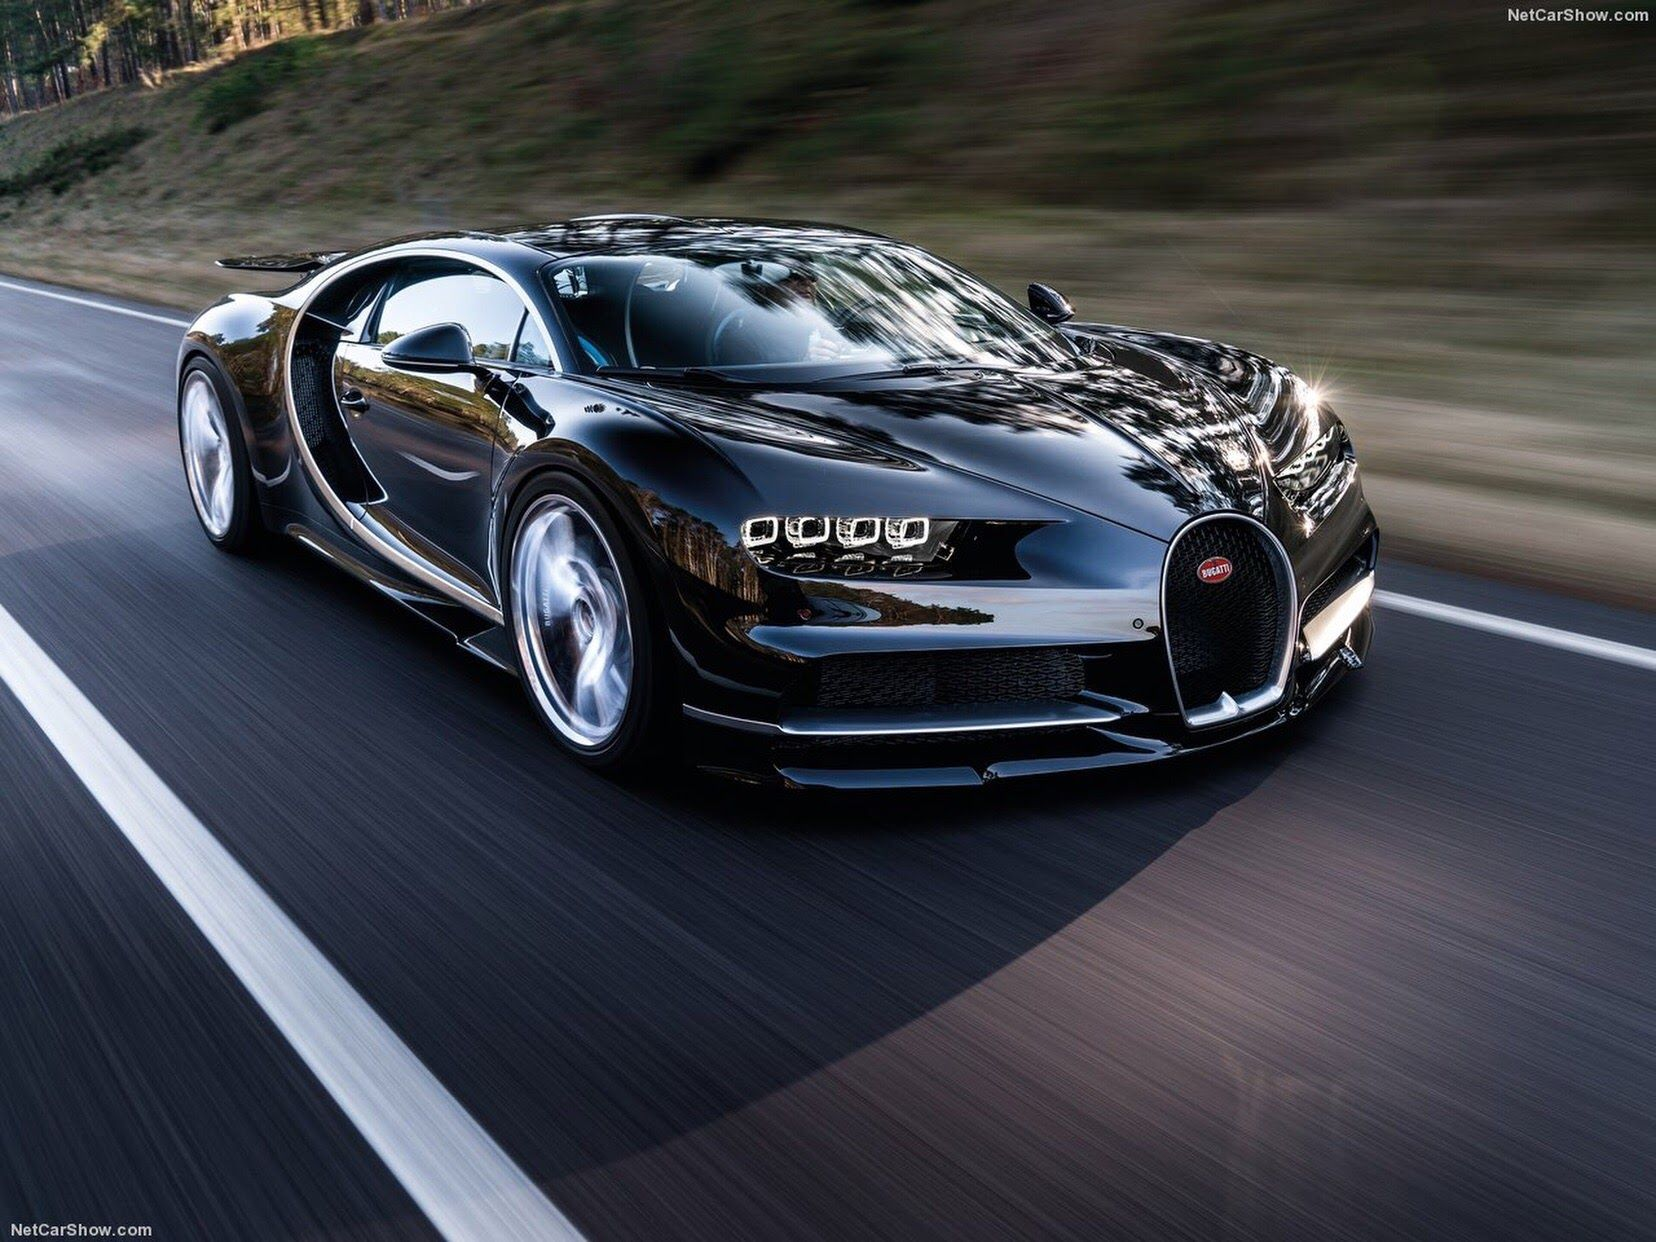 Mukemmel Araba Luxury Sports Cars Bugatti Bugatti Veyron